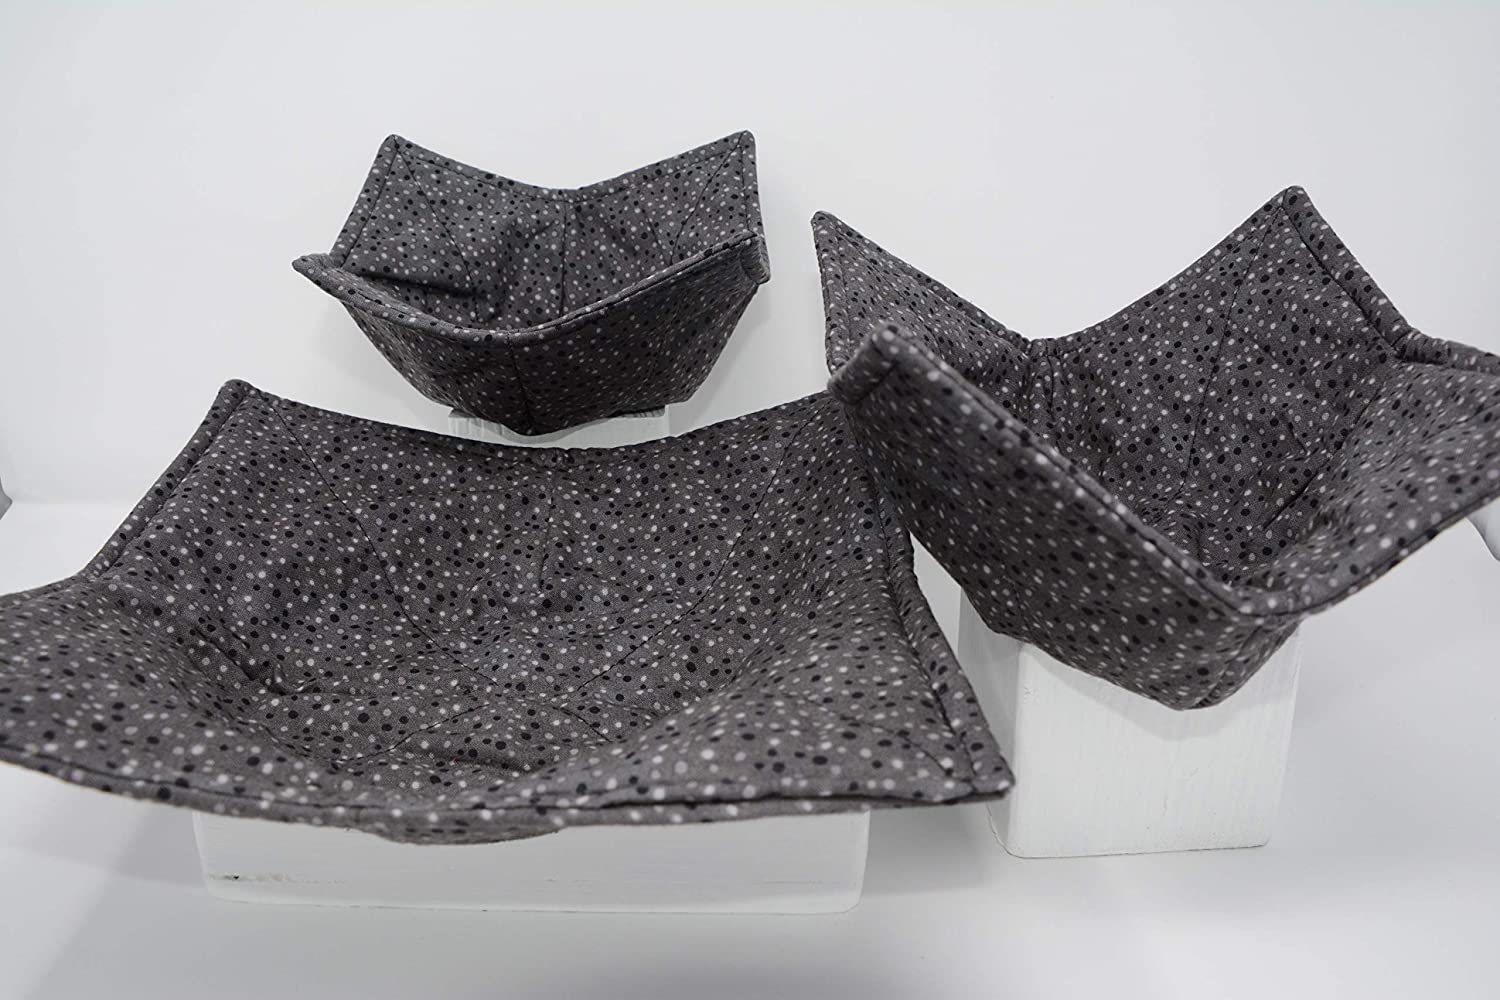 1 Small Bowl Cozy Set of 3 1 Medium Bowl Cozy and 1 Dinner Plate Cozy Gray Dots Microwave Dish Cozies